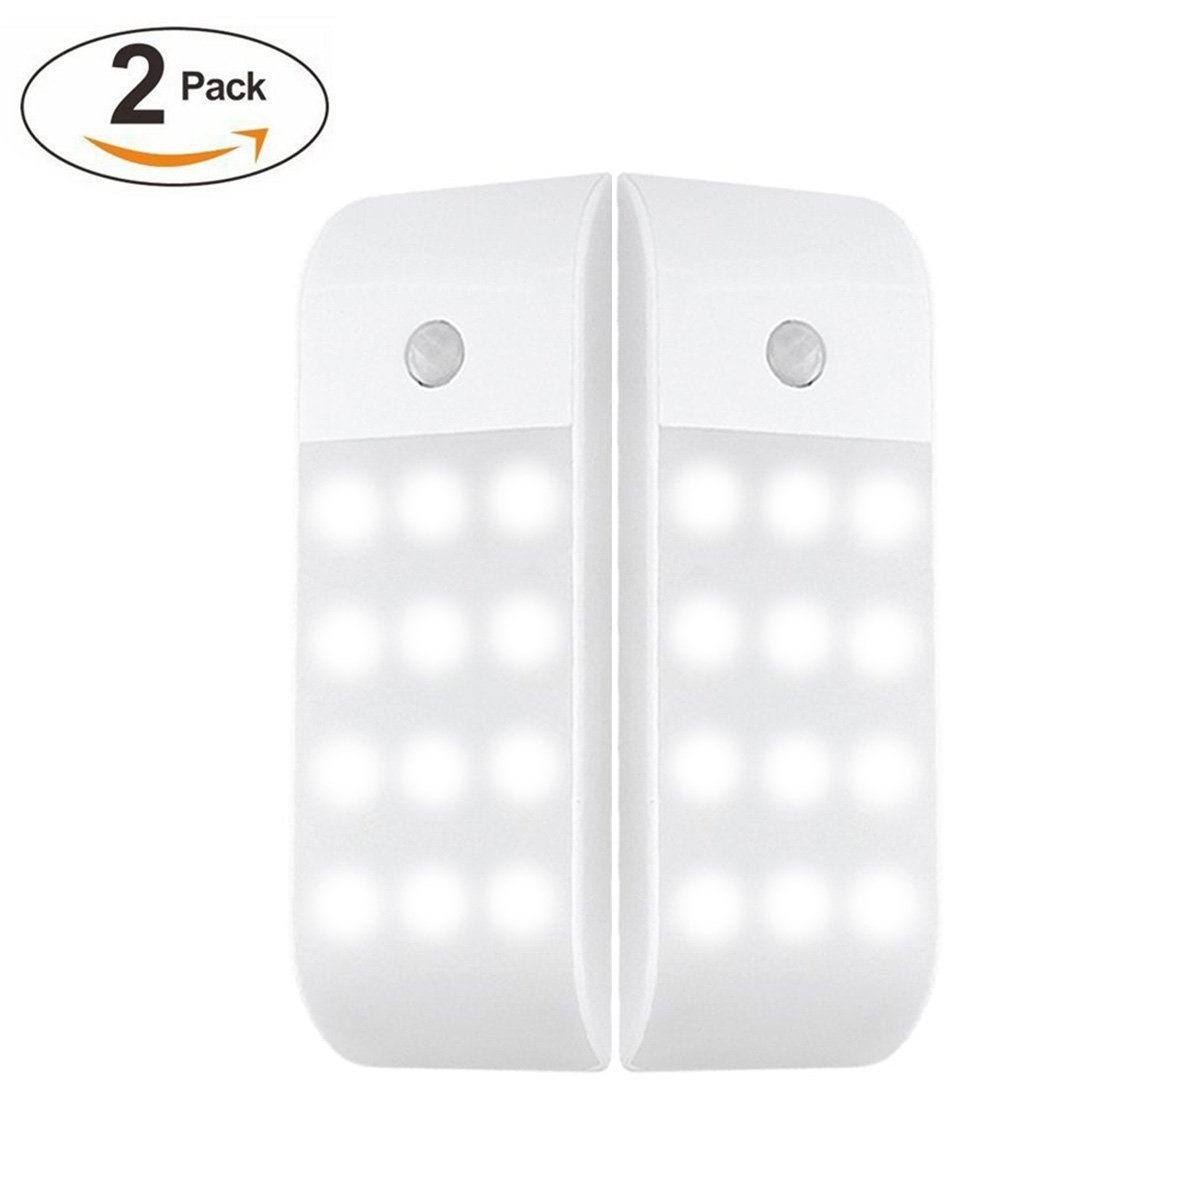 Geefawa Motion Sensor Closet Light Rechargeable LED Wall Night Light Lamp Stick-on Anywhere Stair Lights Magnetic Security Lights for Hallway, Bathroom, Stairs, Garage (2 Pack) by Geefawa